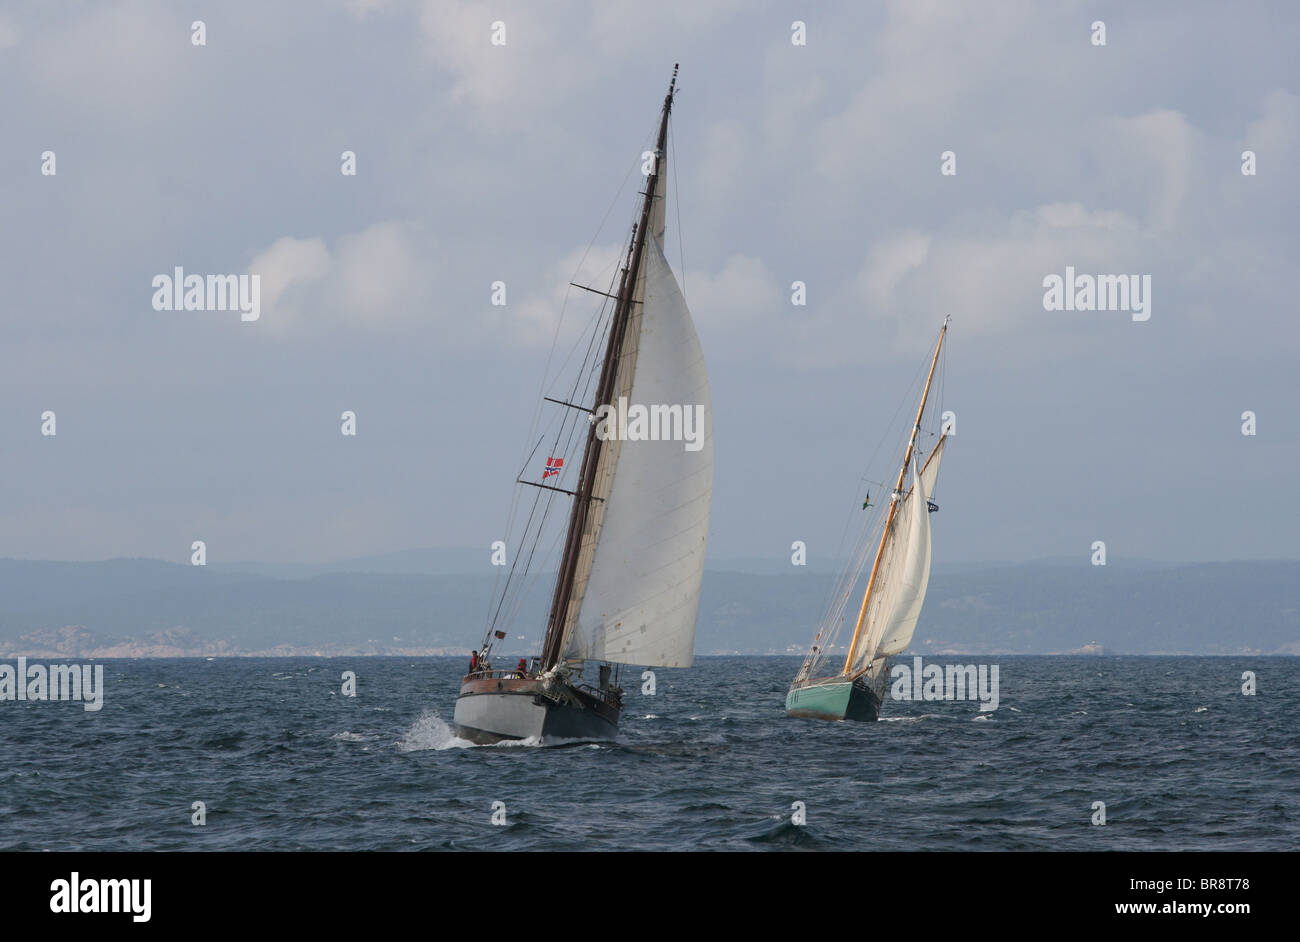 The Tall Ships Races 2010, Kristiansand - Stock Image